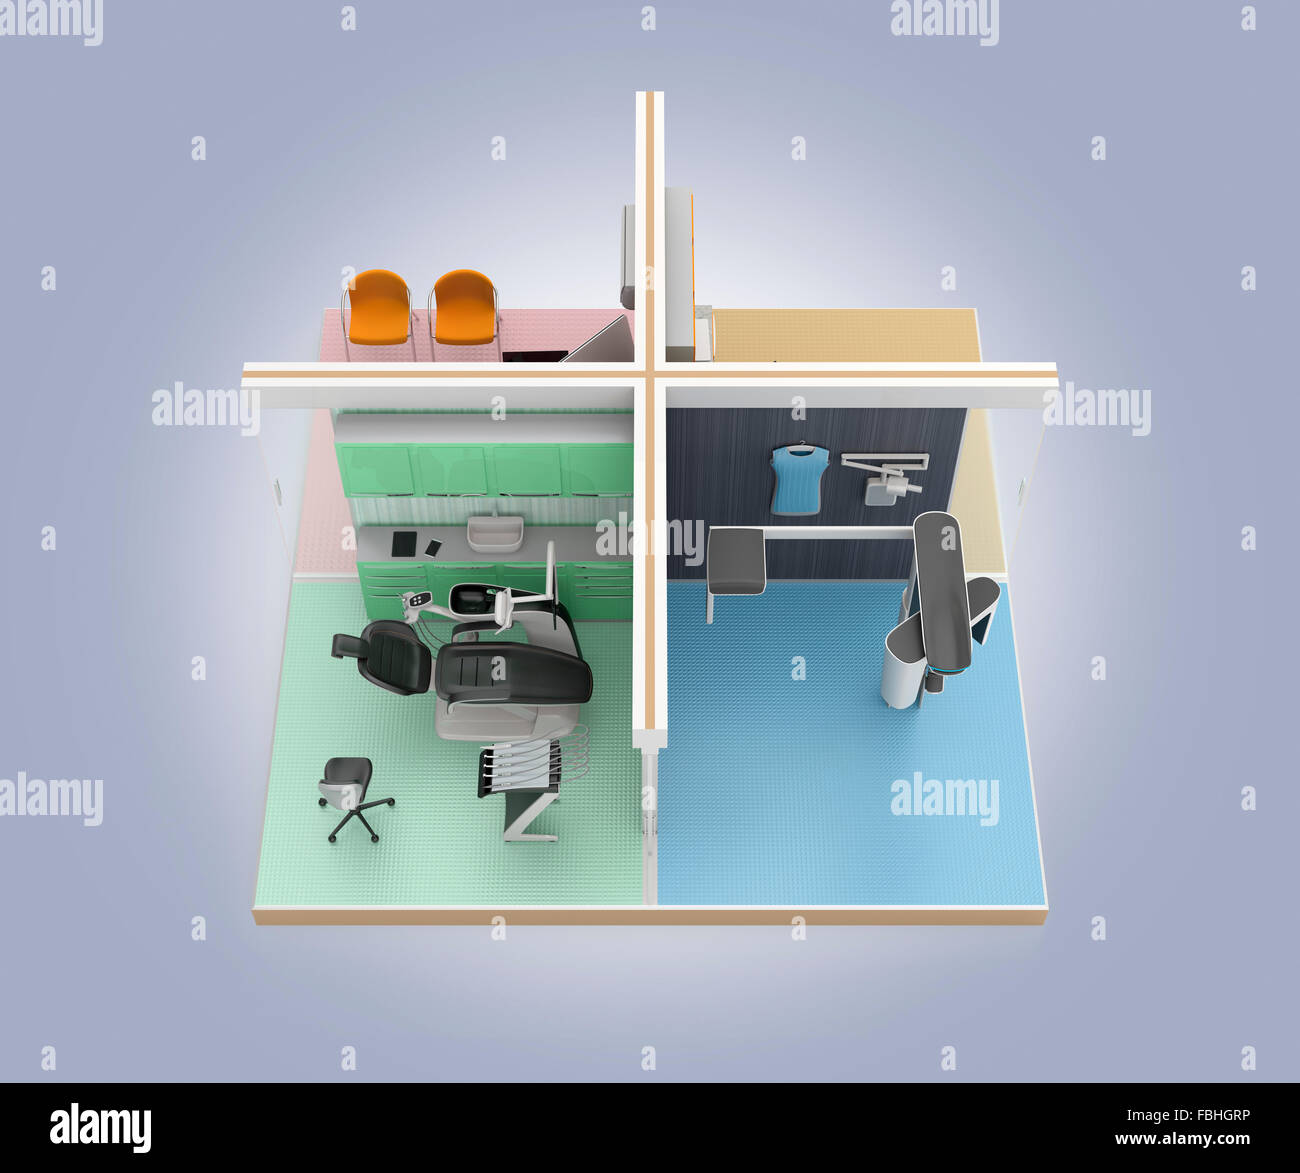 Isometric View Of Dental Clinic Interior 3d Rendering Image With